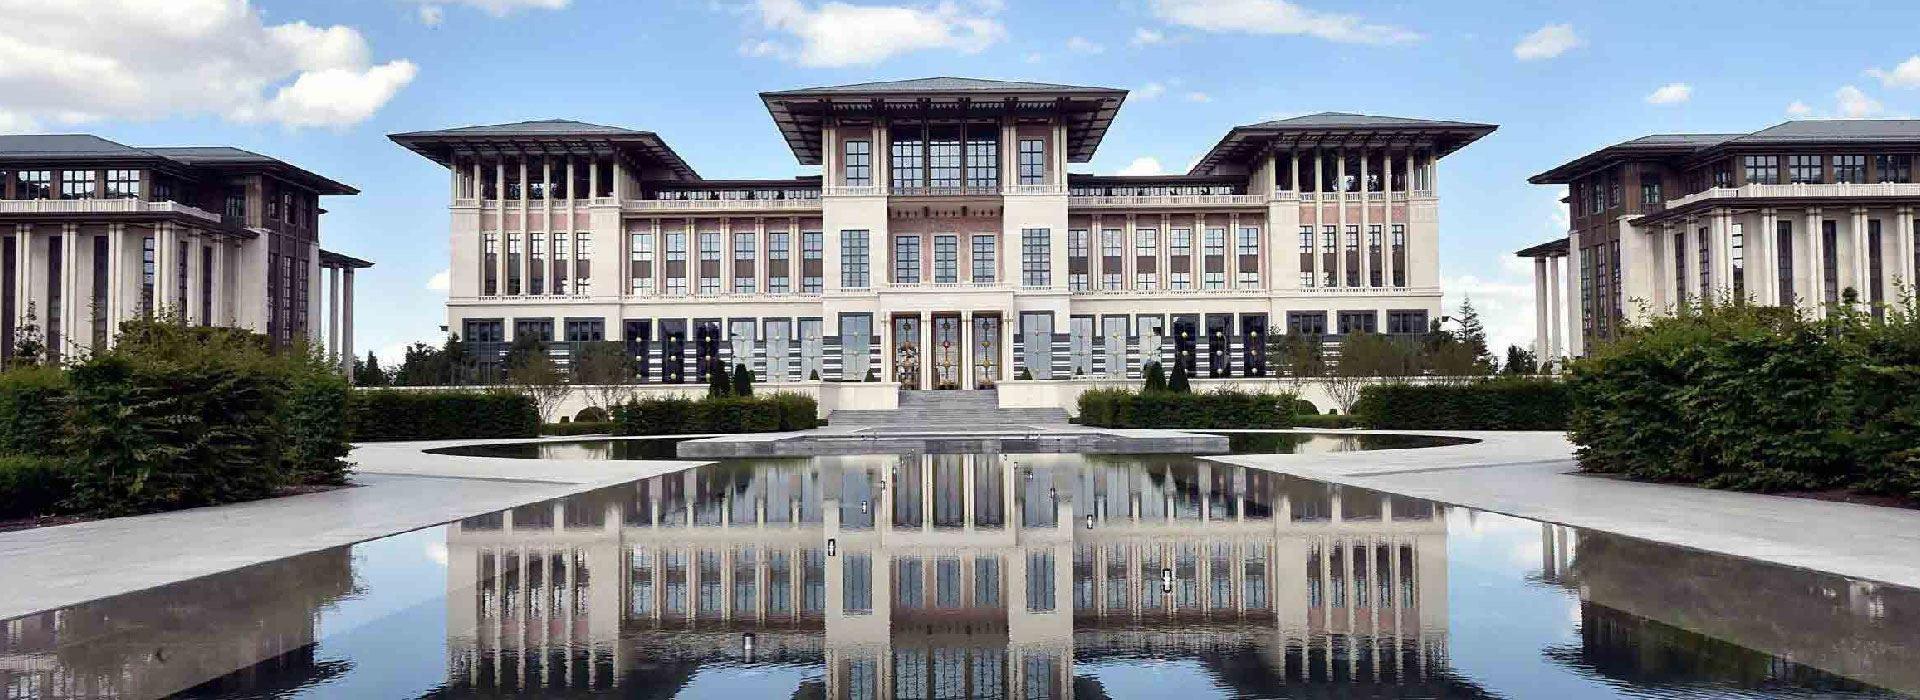 Presidential Palace of Turkish Republic Windows